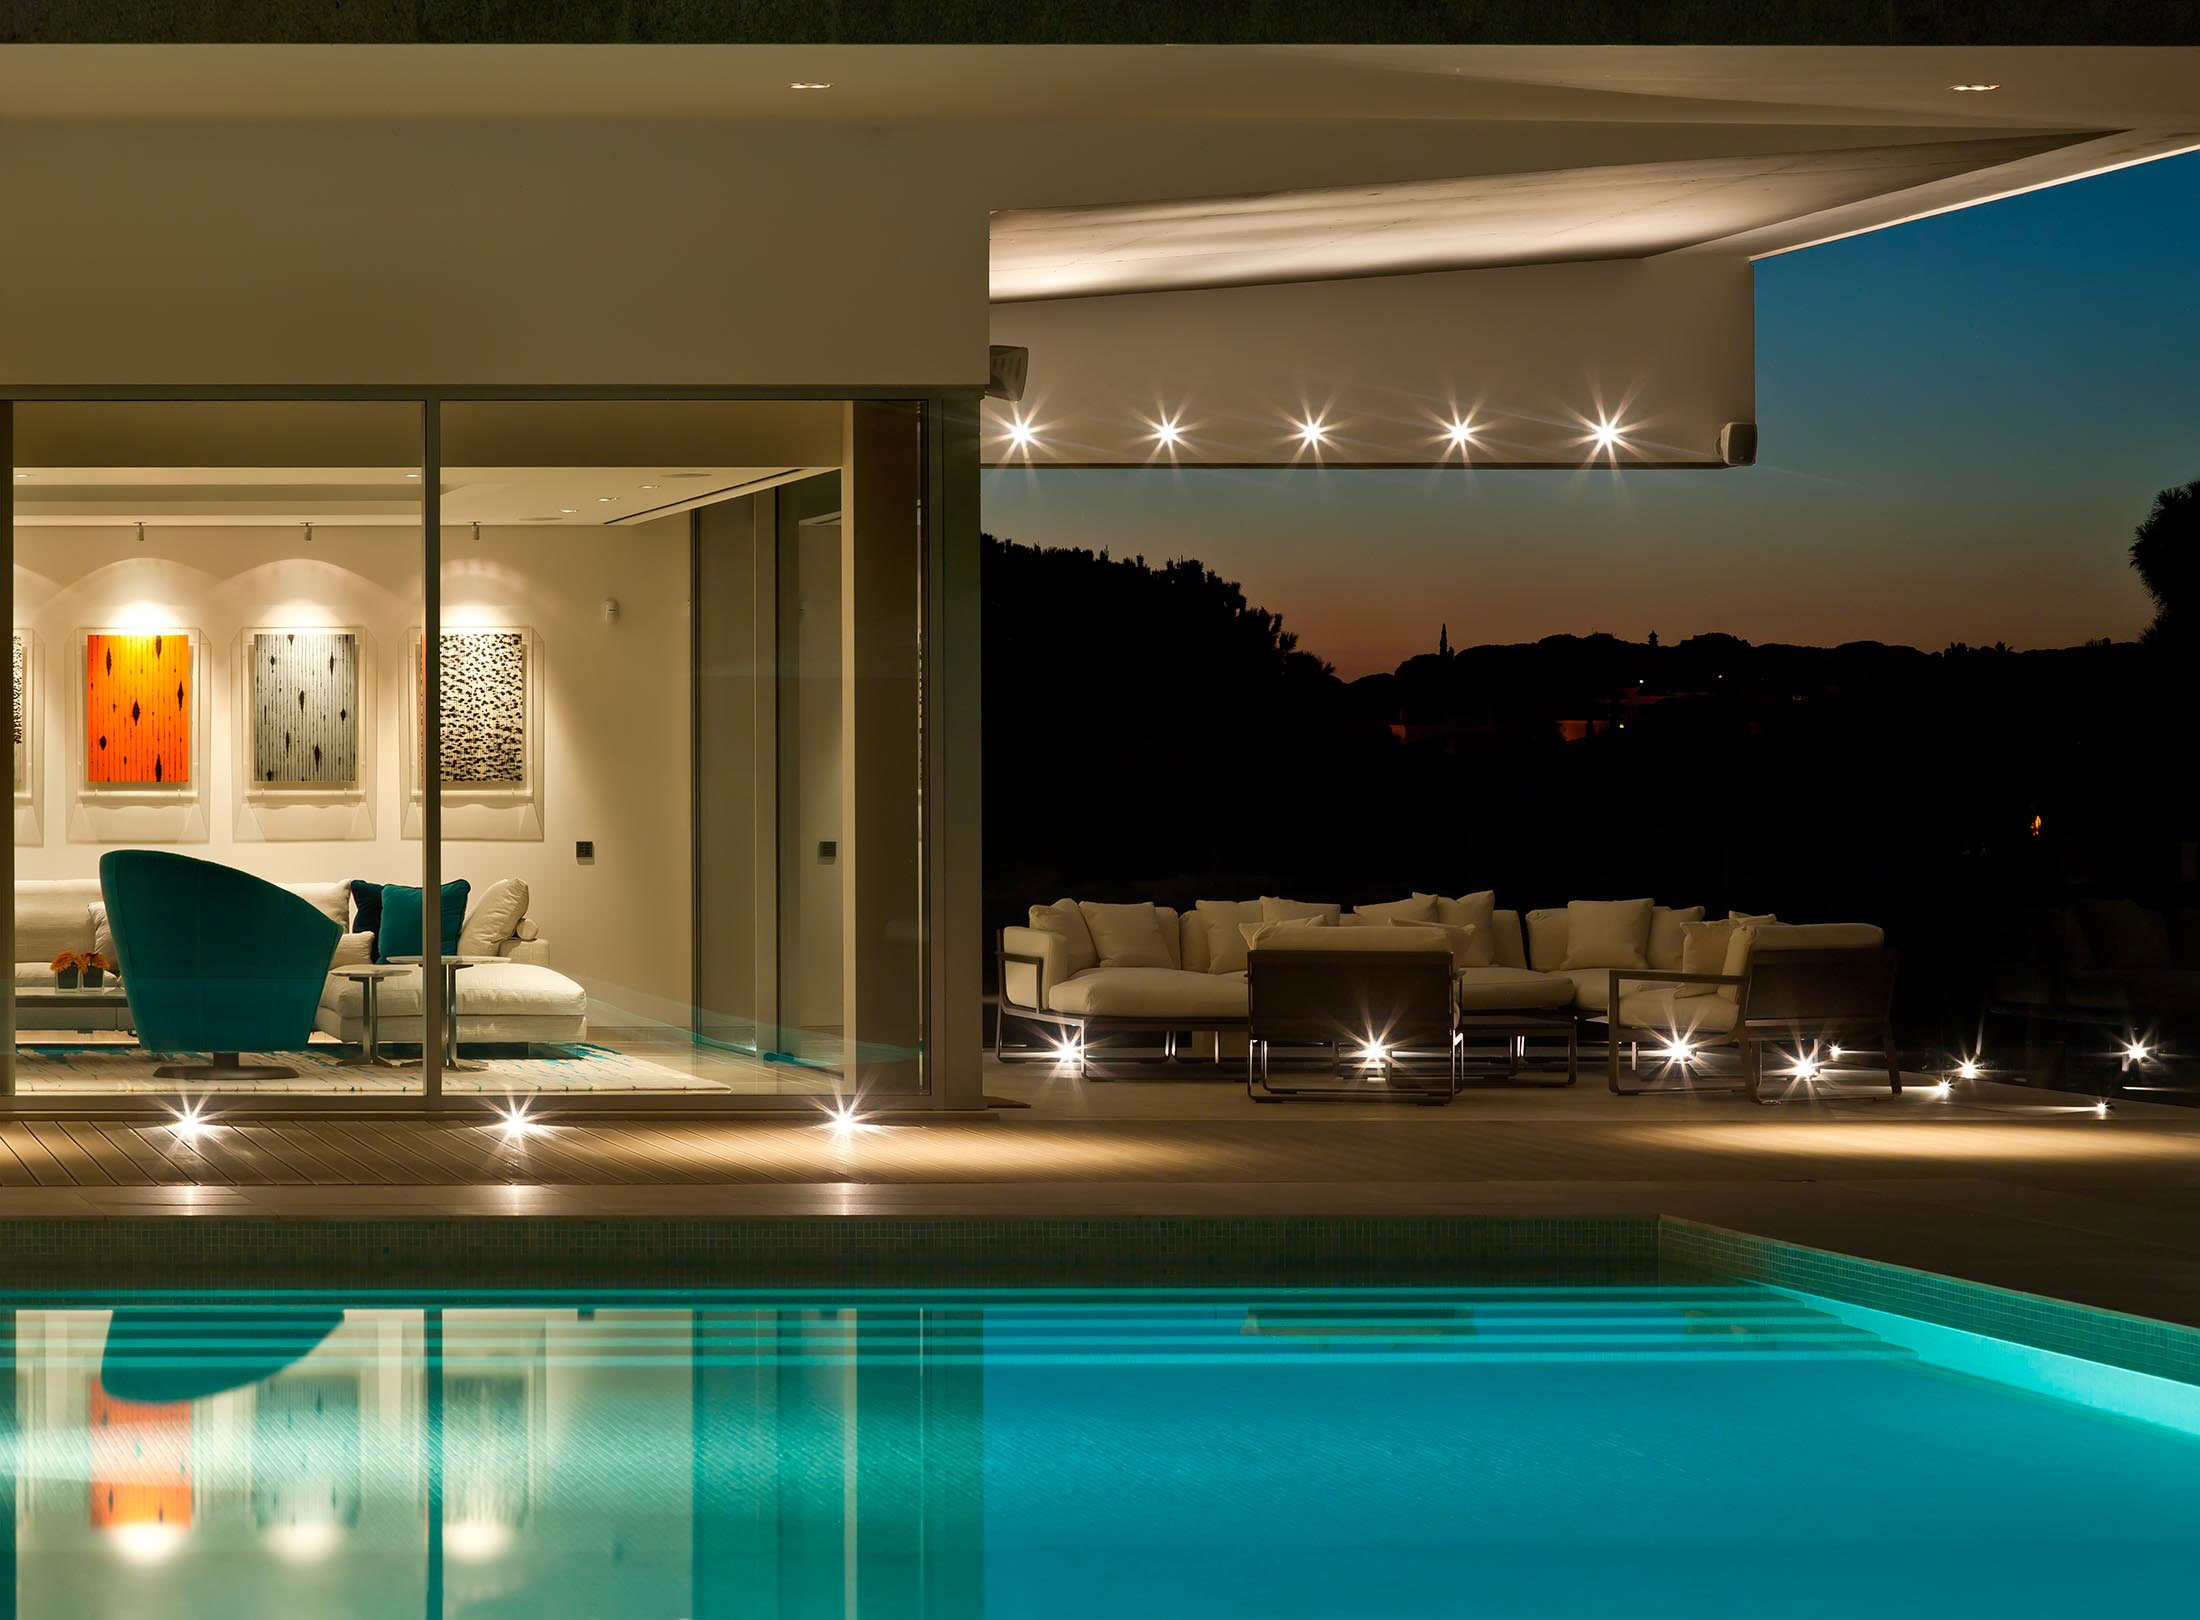 Pool, Lighting, Family Home in Portugal